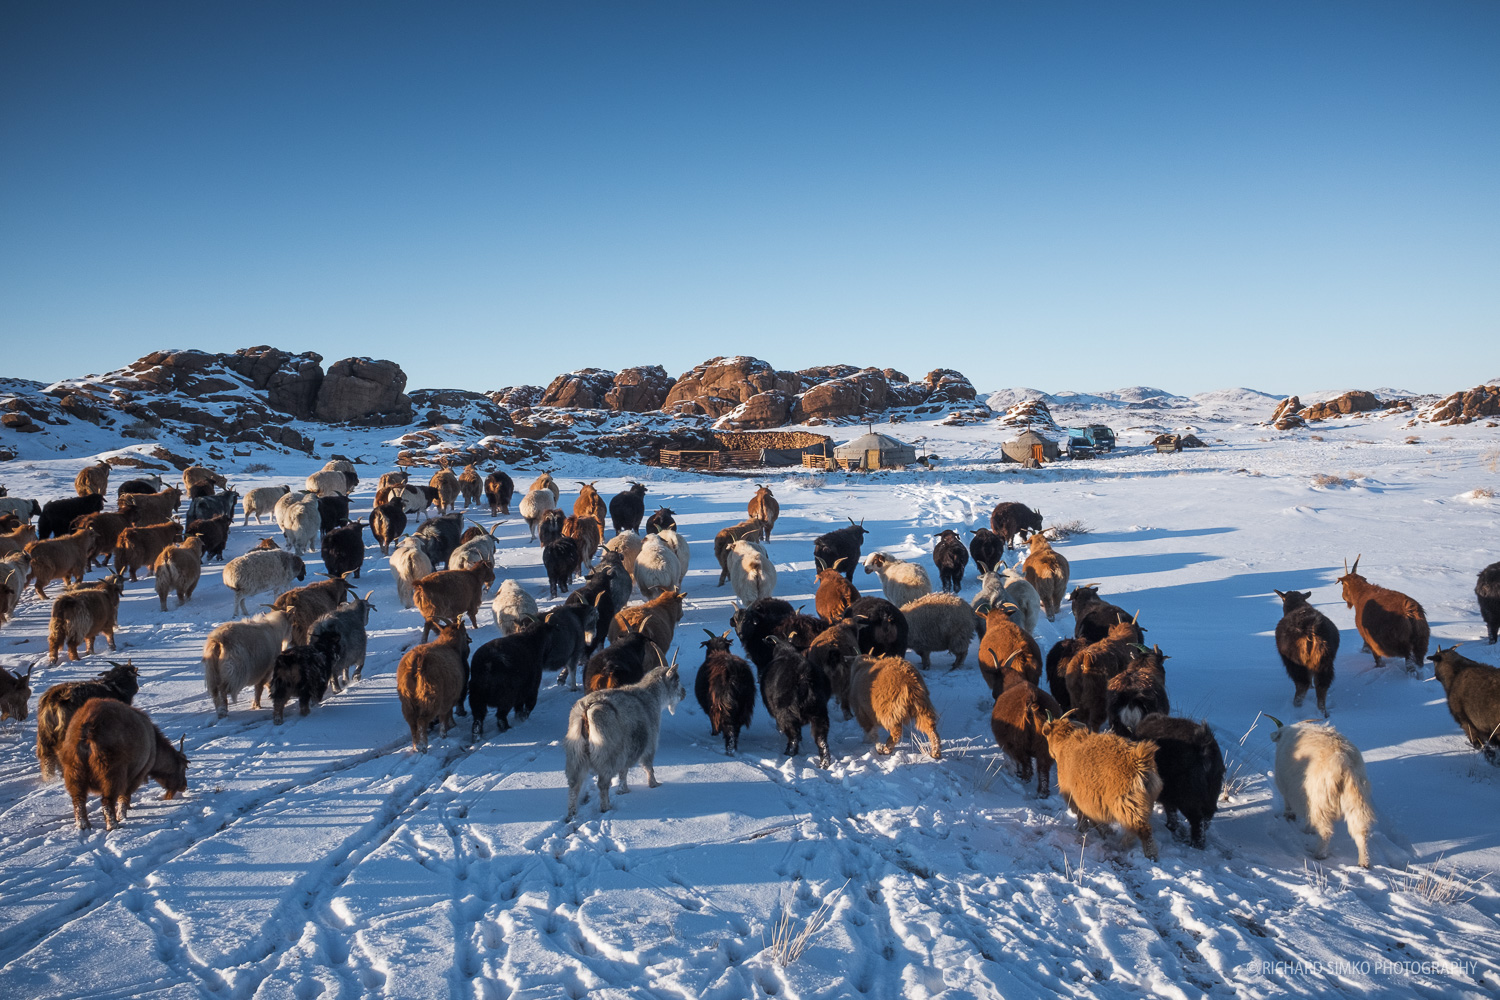 I am herding the goat and sheep back to camp. It fun, it's good for health and I can take photographs like this one.